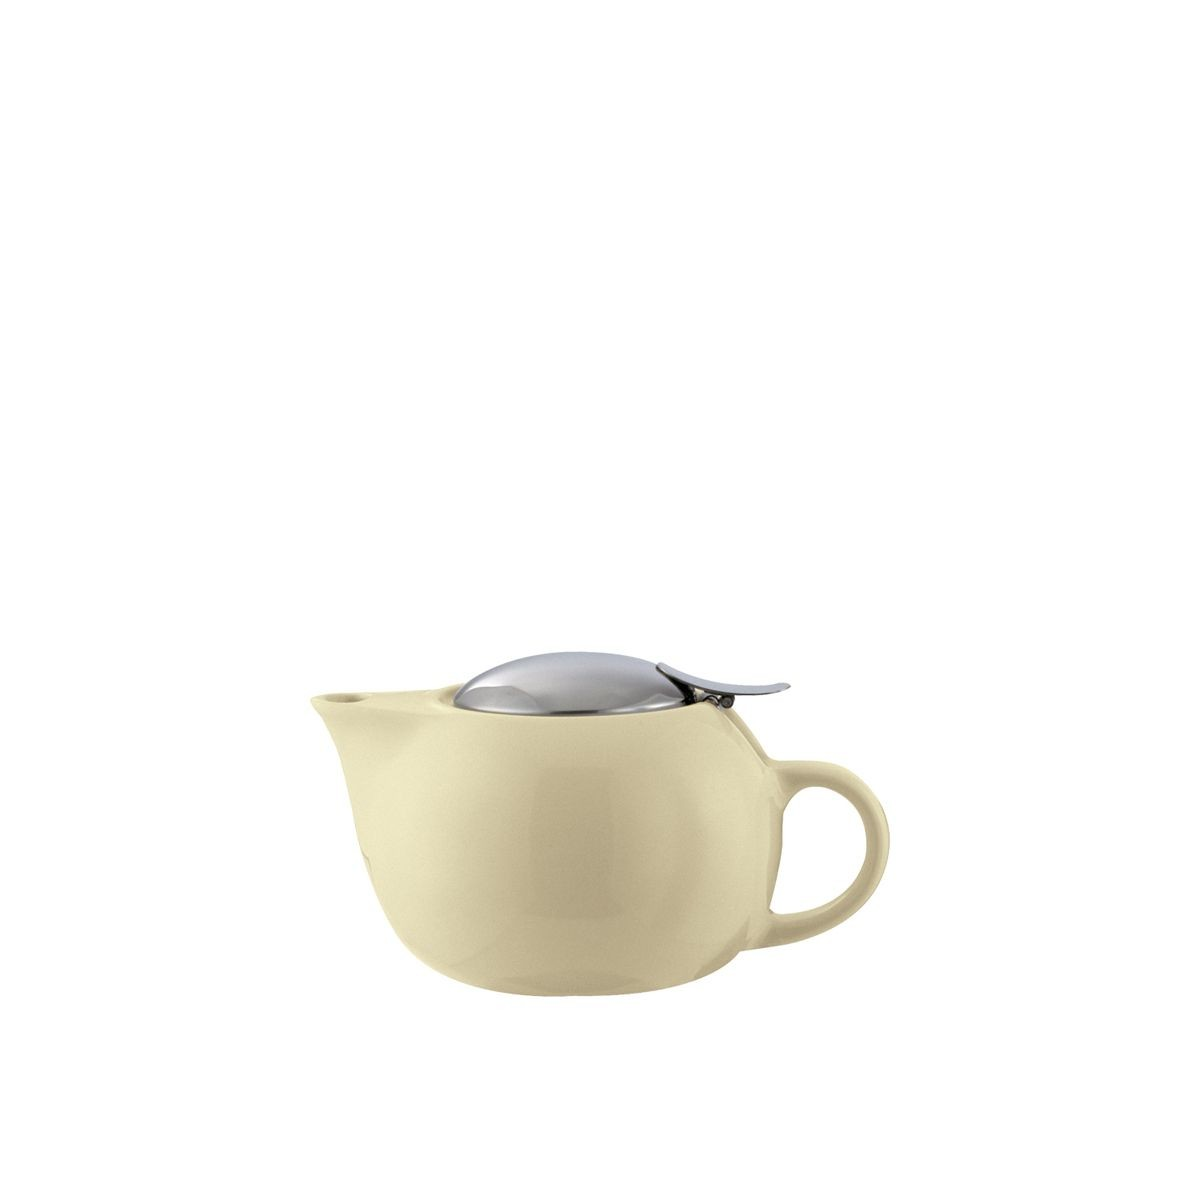 Service Ideas TPC10CM Cream Ceramic Teapot with Lid, Infuser Basket, 10 oz.